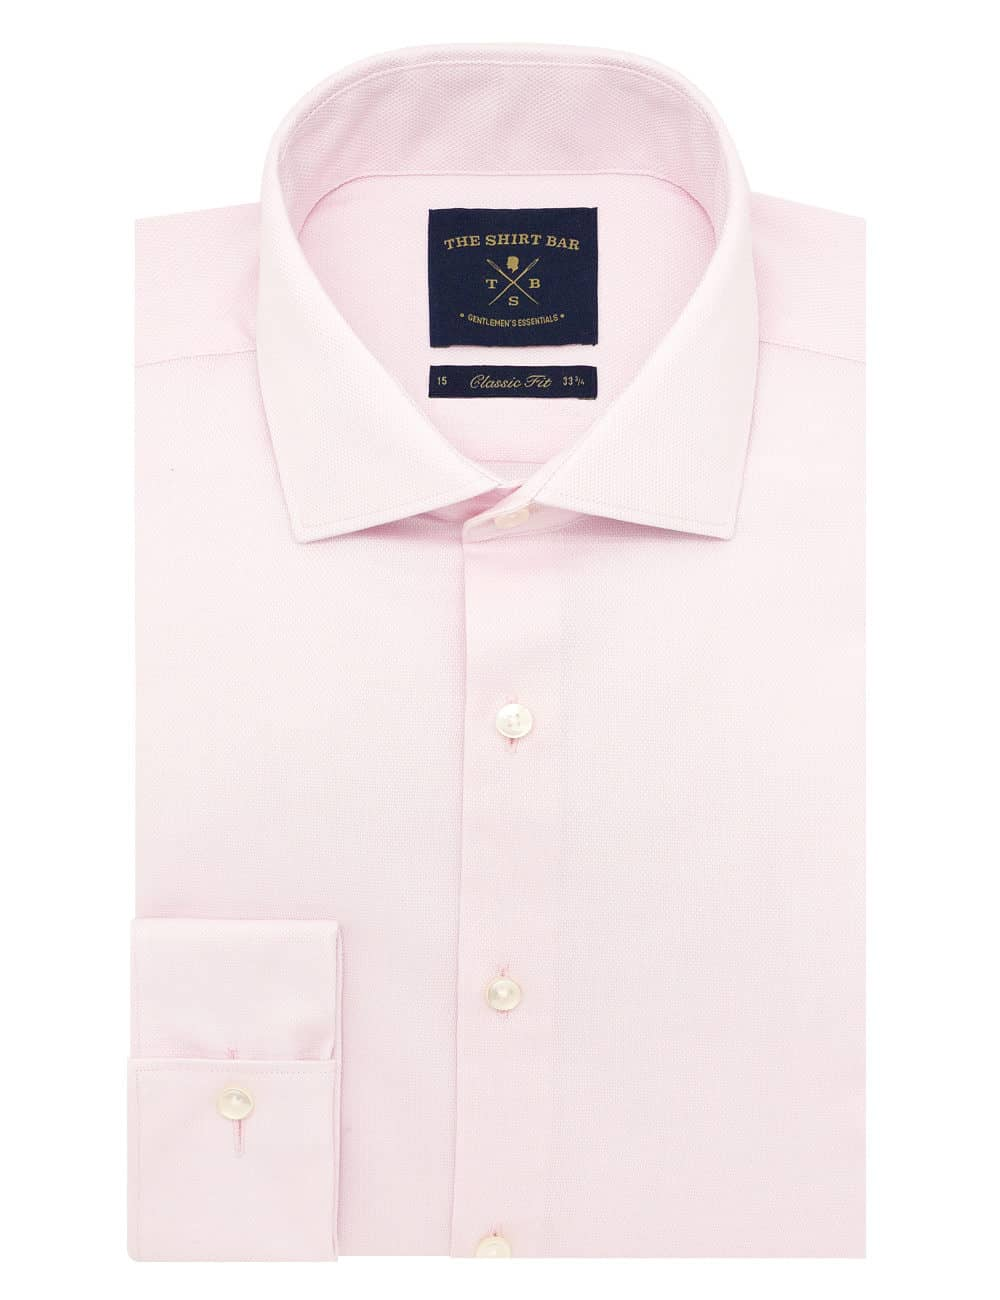 CF Solid Pink Dobby Cotton Blend Spill Resist Long Sleeve Double Cuff Shirt CF3D5.16